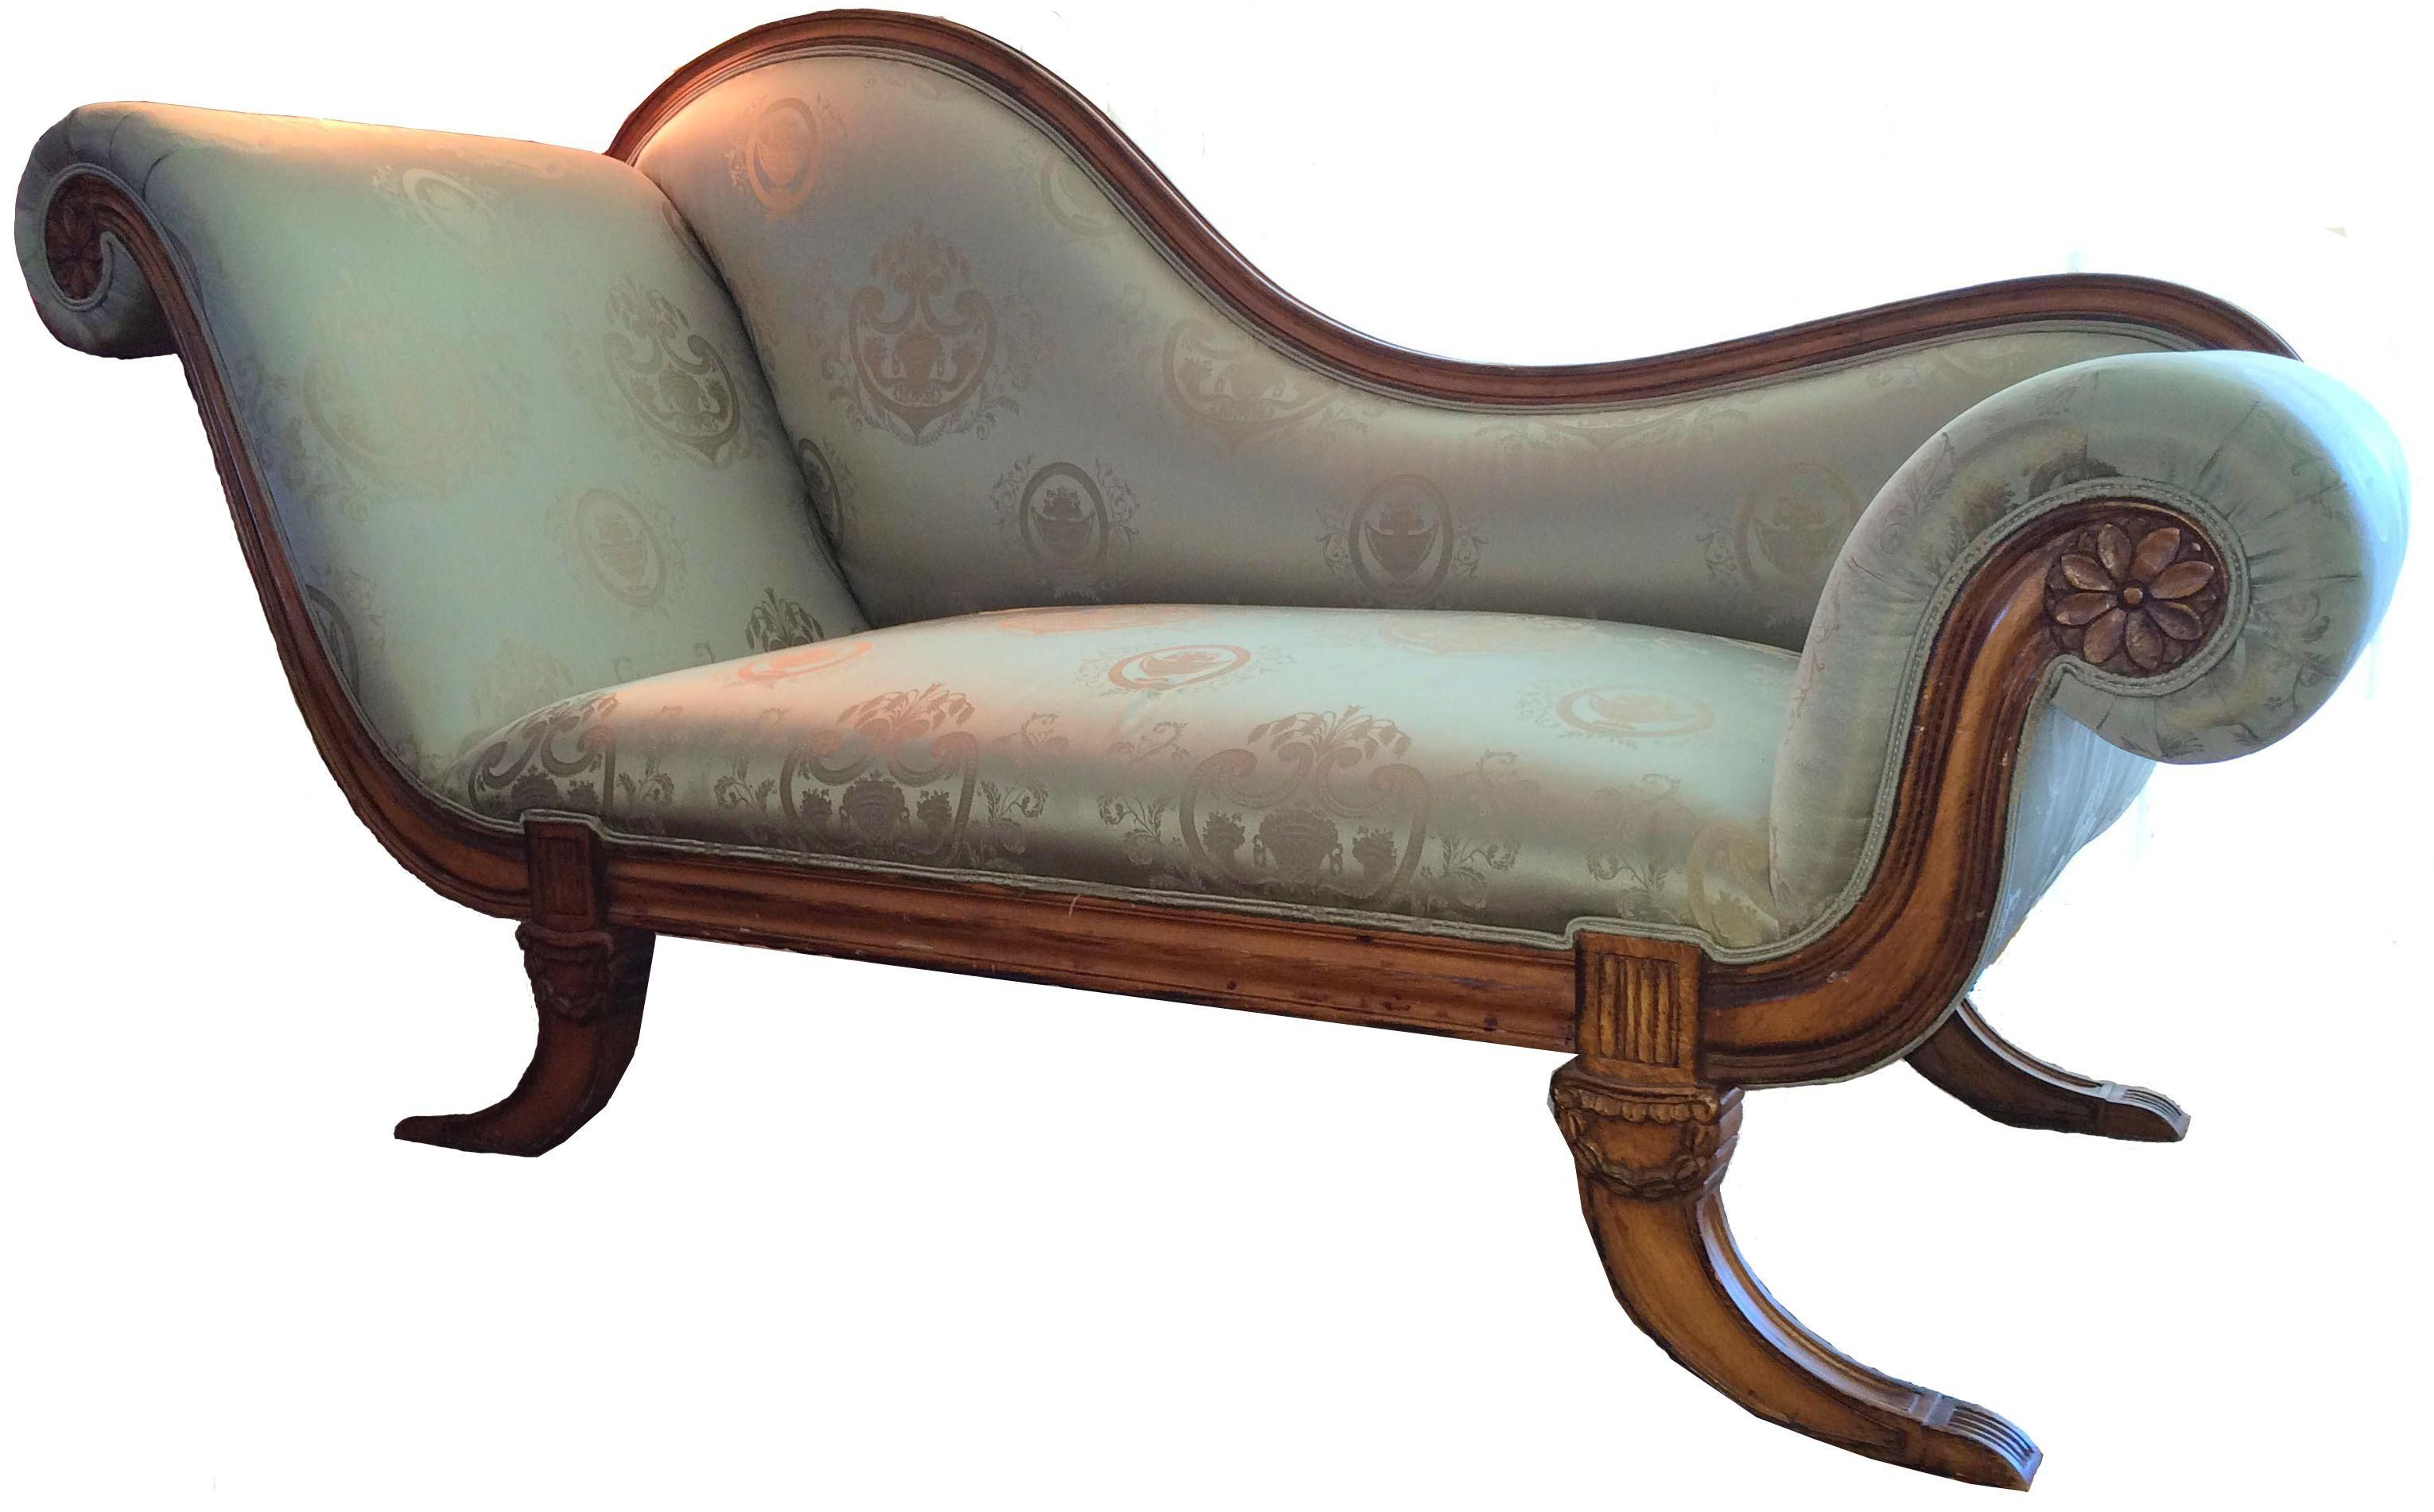 Directoire Chaise Lounge Fainting Couches